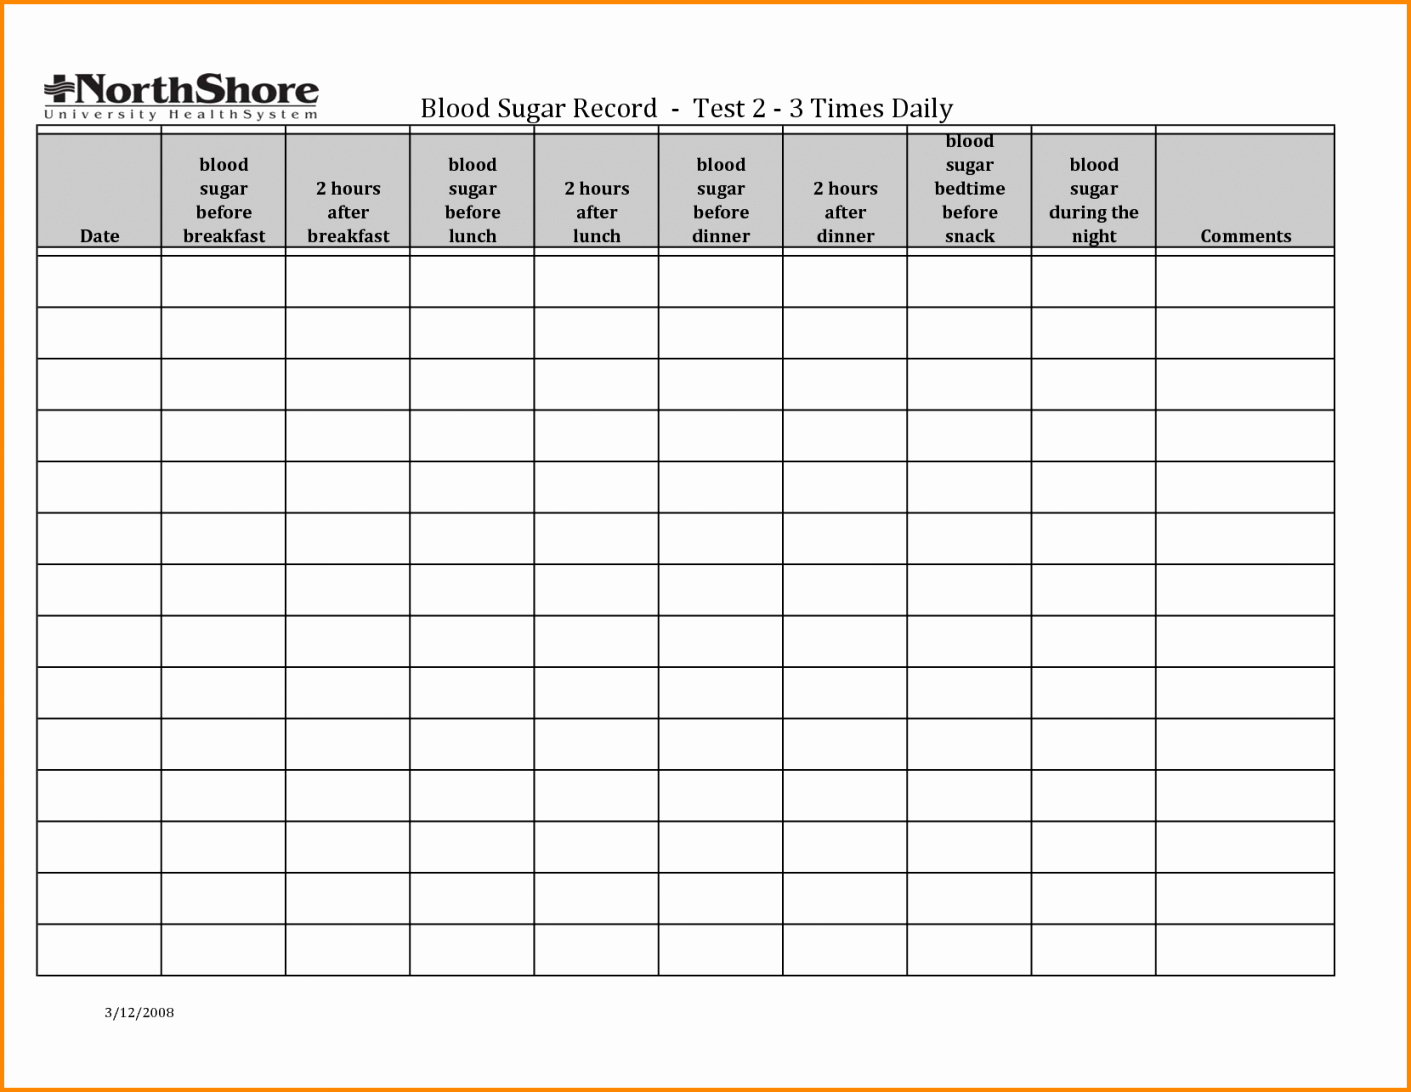 Blood Test Spreadsheet Throughout Blood Sugar Spreadsheet For Blood Sugareadsheet Log Diabetes Glucose Blood Test Spreadsheet 1 Printable Spreadshee 1 Printable Spreadshee blood test excel spreadsheet